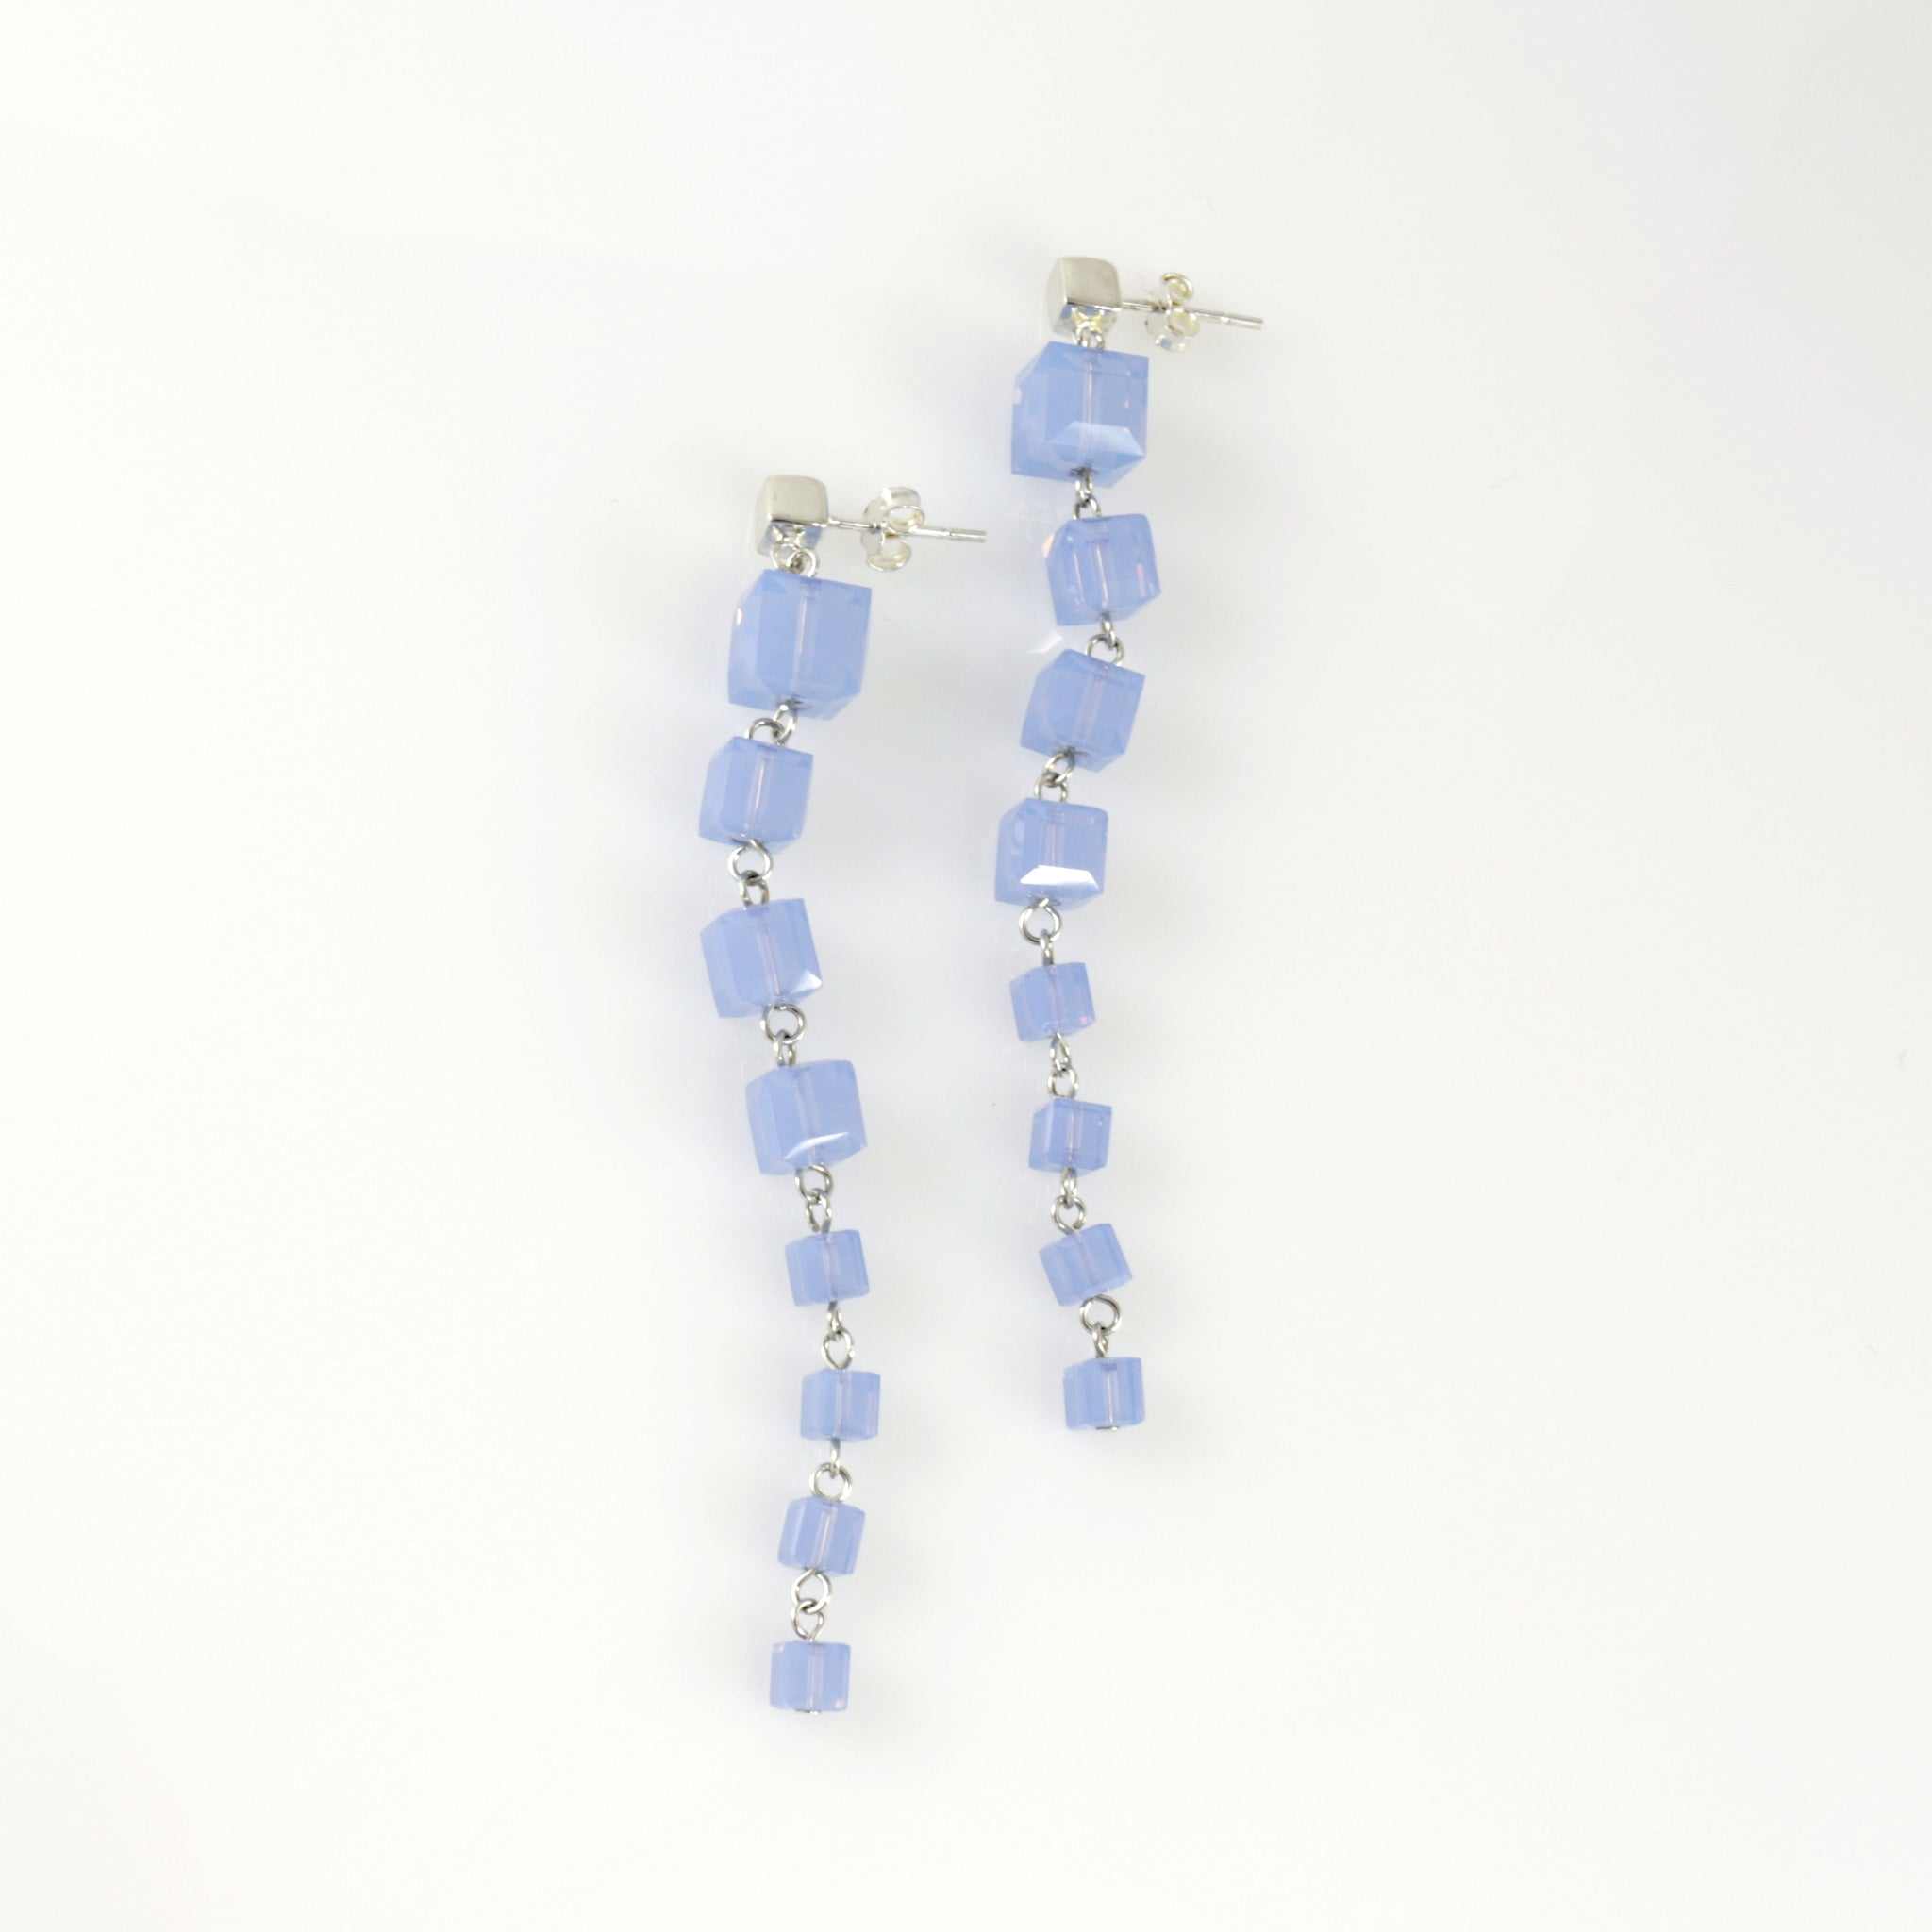 Windows Earrings in Air Blue Opal